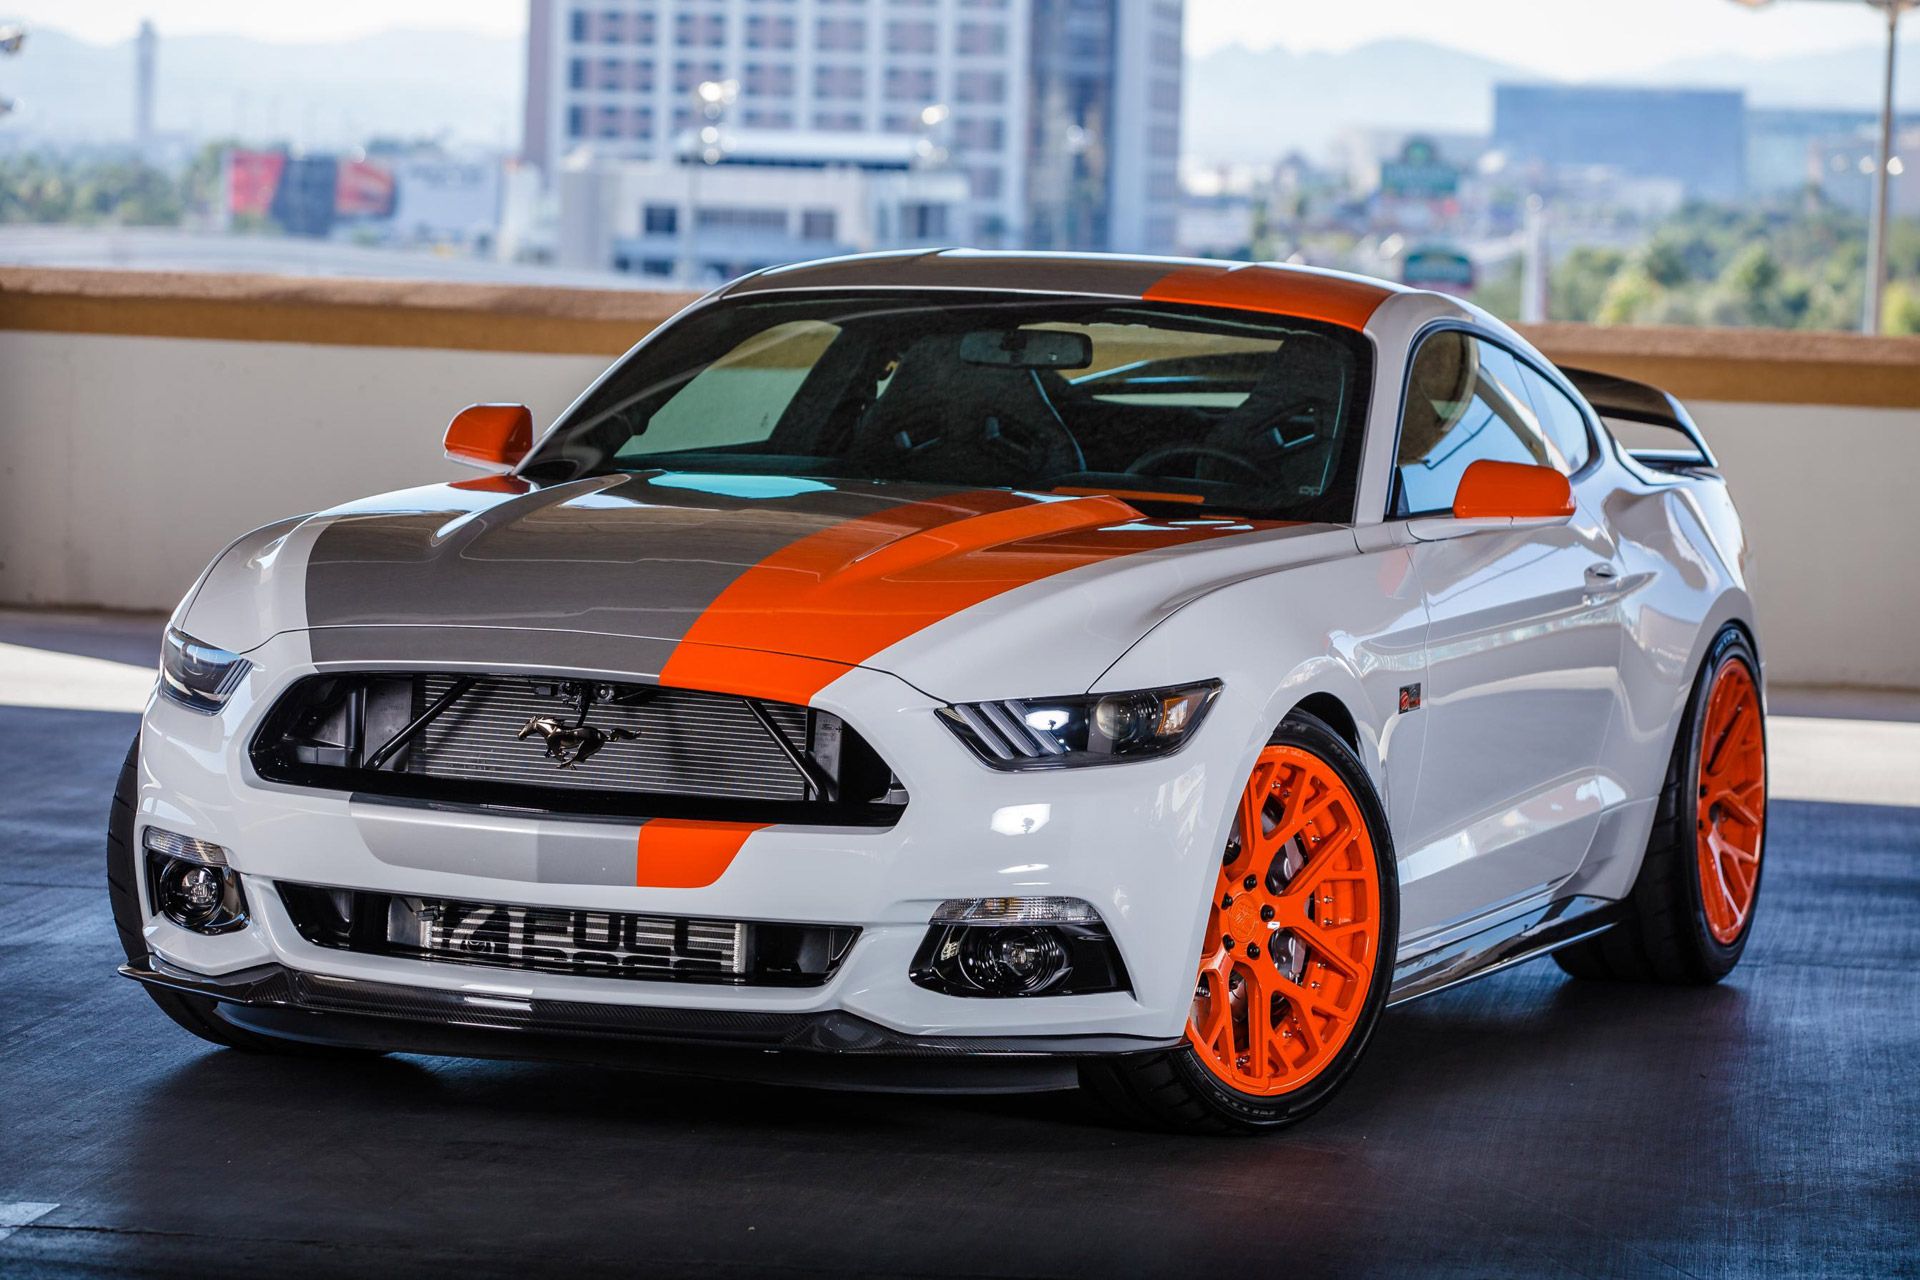 Ford Mustang Named Hottest Car At SEMA Show - Ford show car